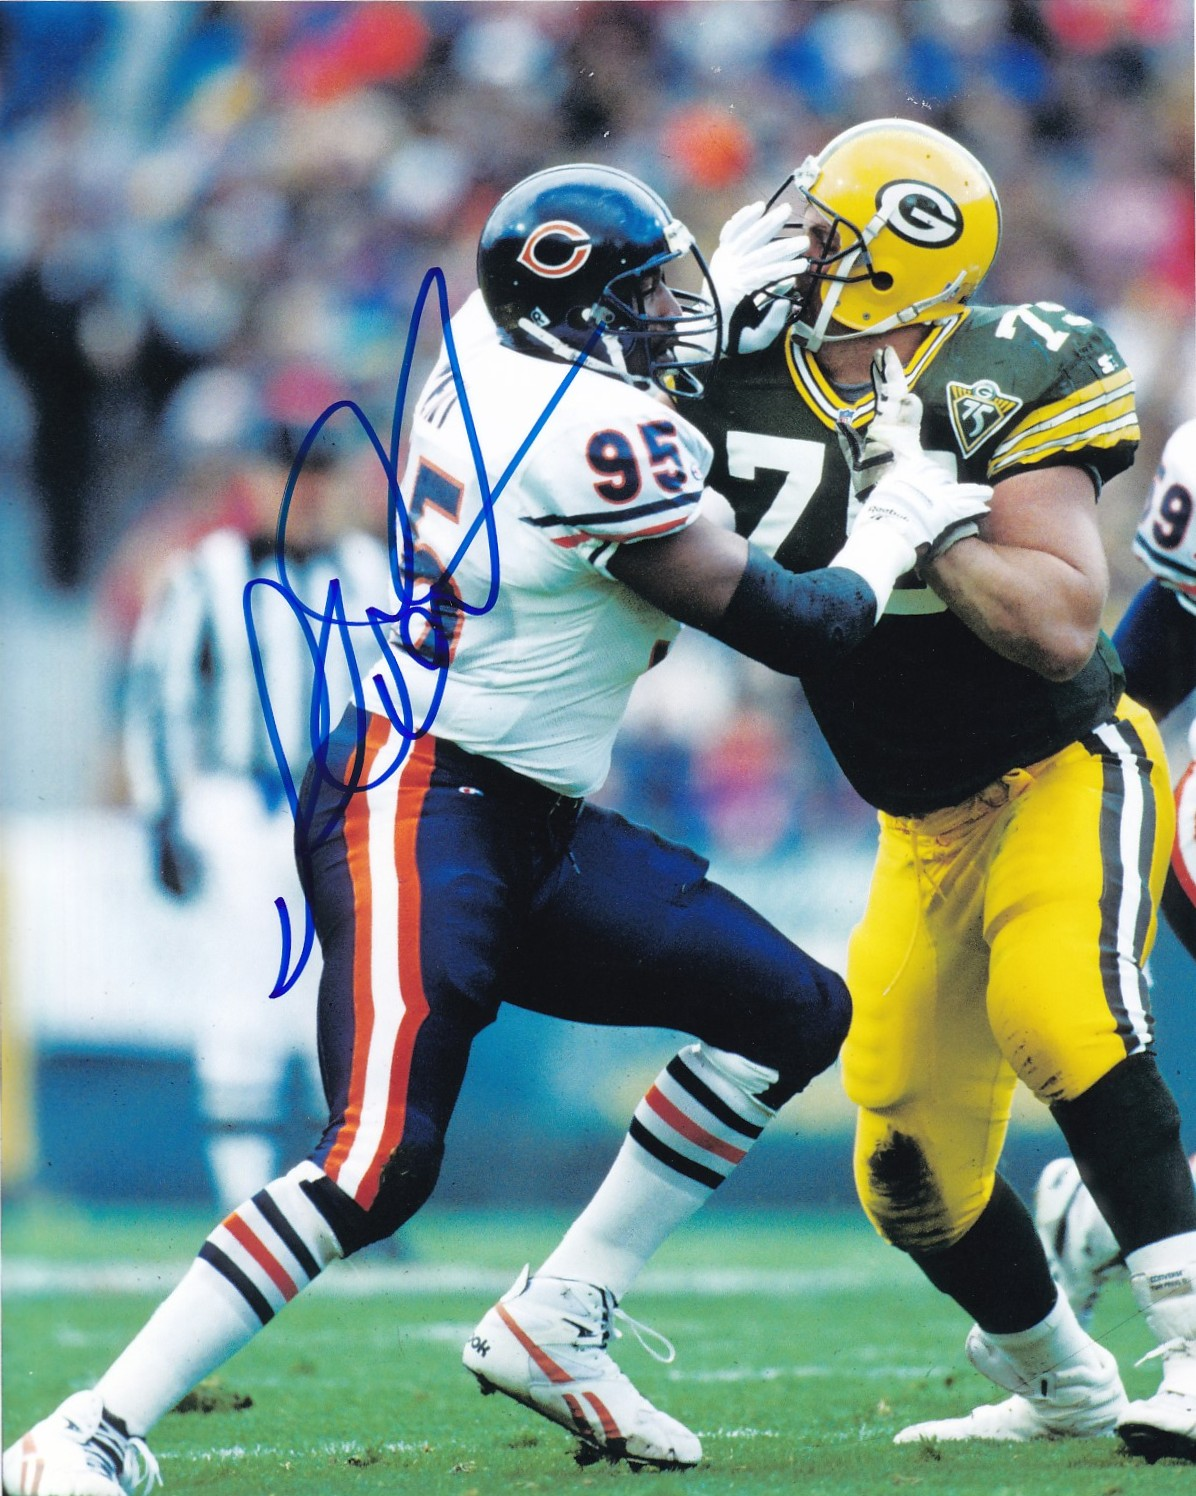 AutographsForSale Richard Dent autographed Chicago Bears 8x10 photo at Sears.com